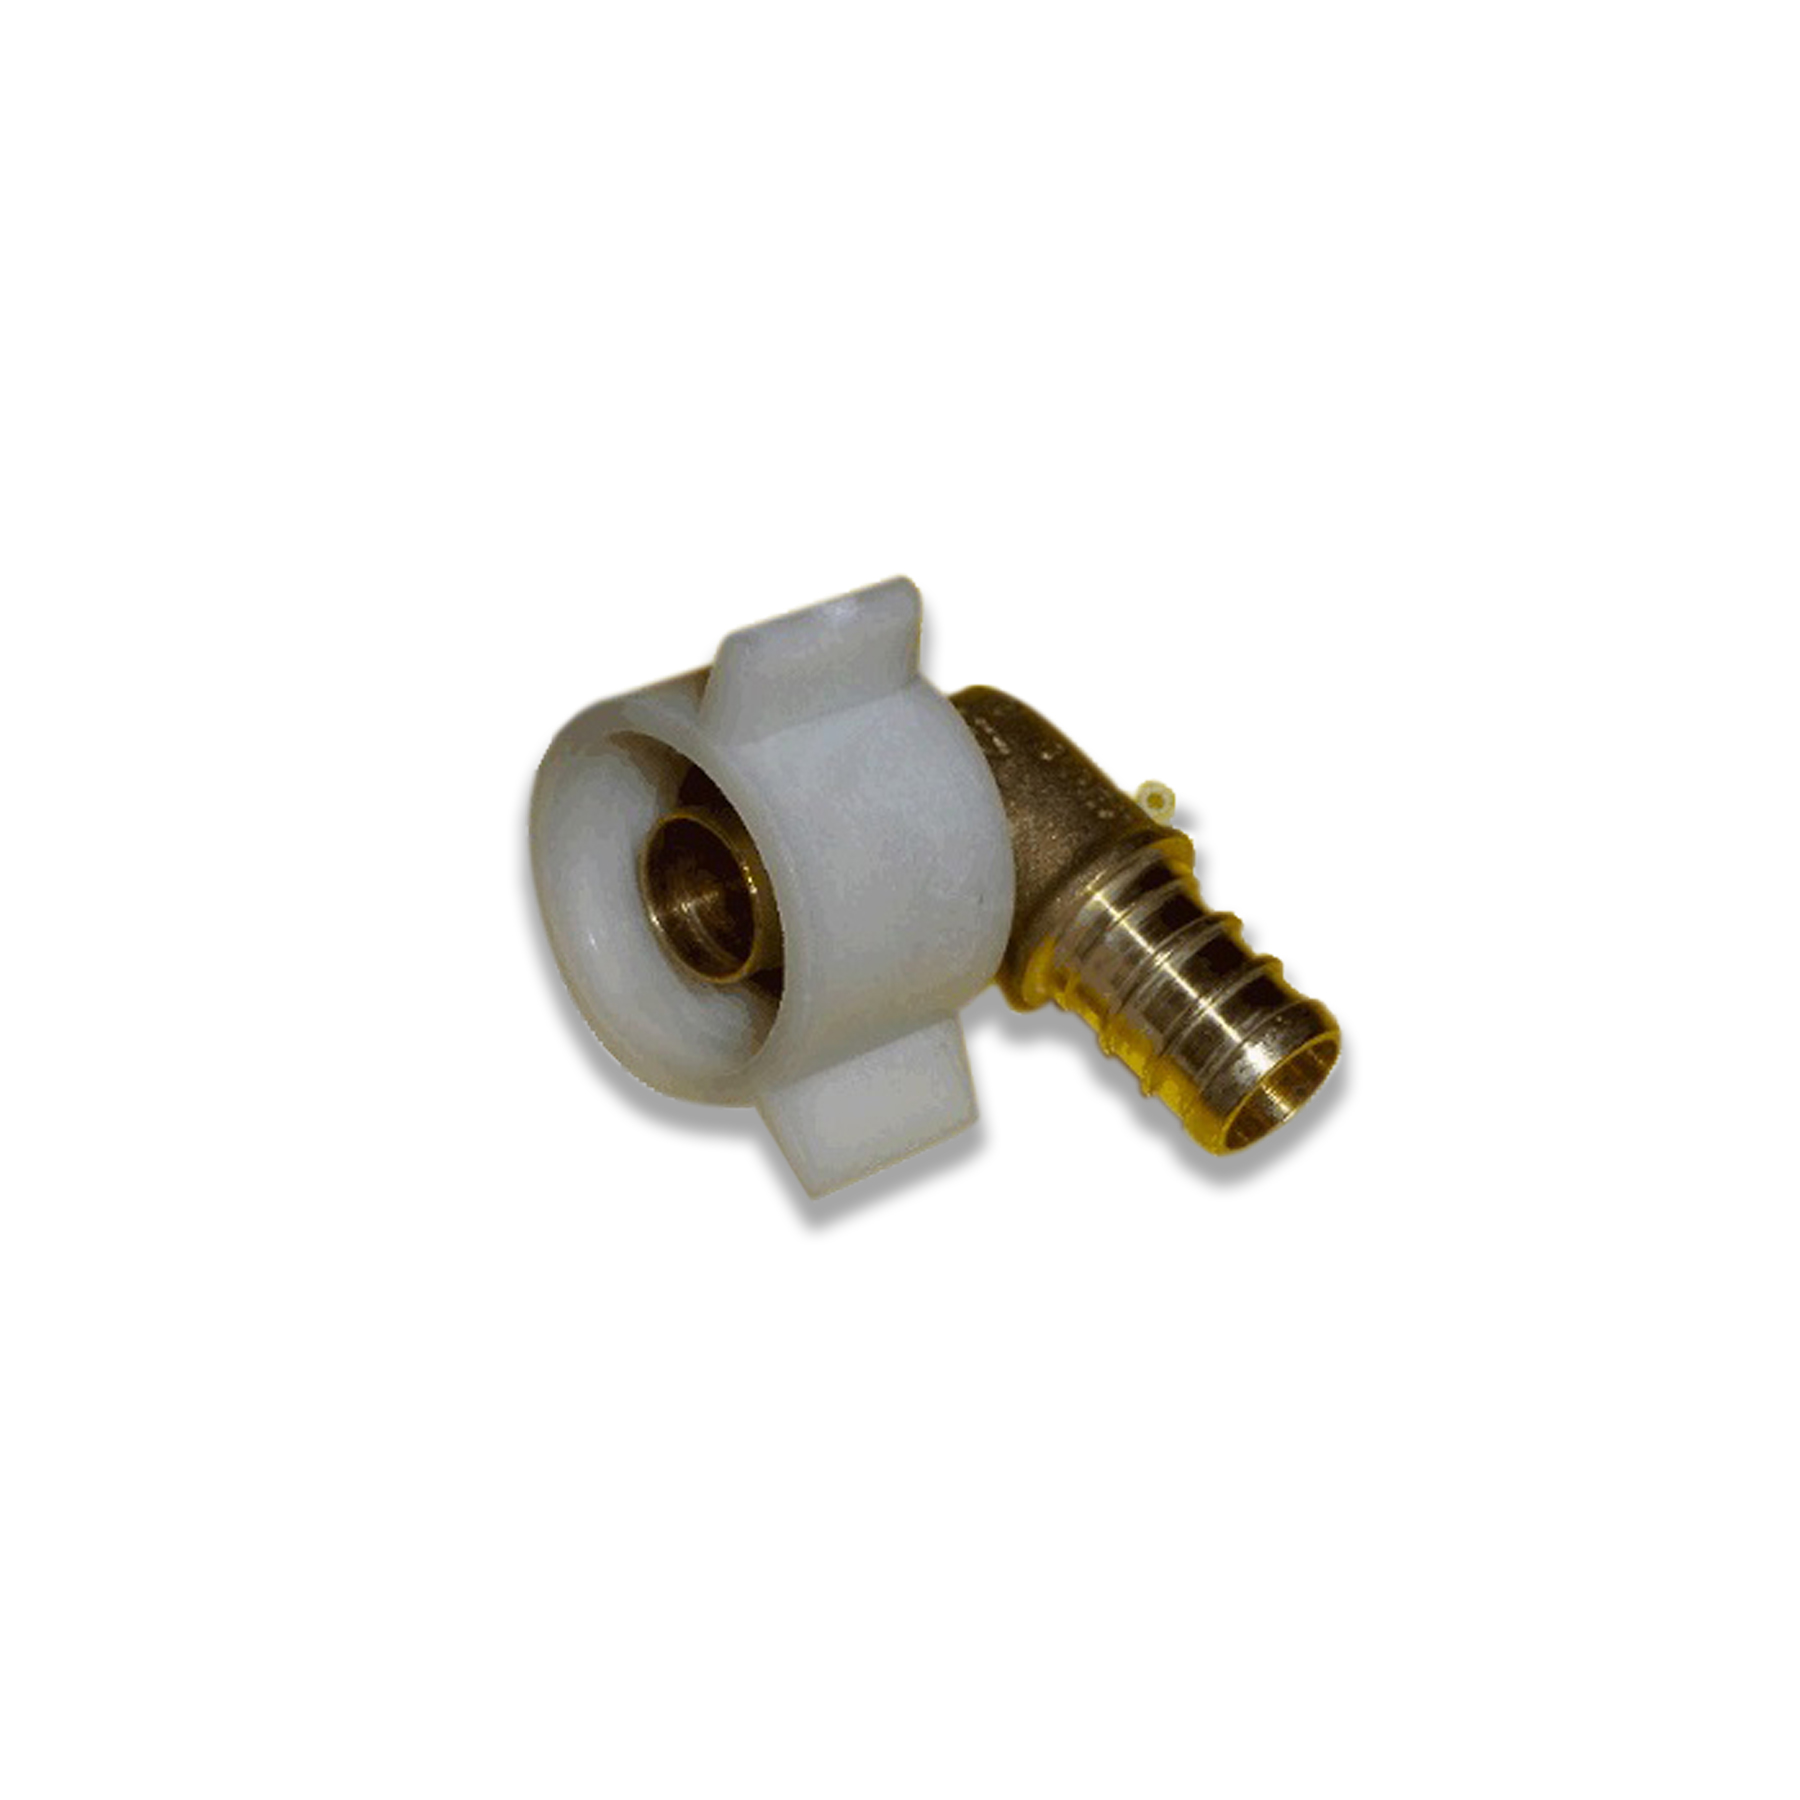 Elbow Swivel Fitting, 1/2 in. Barb x 1/2 in. NPT